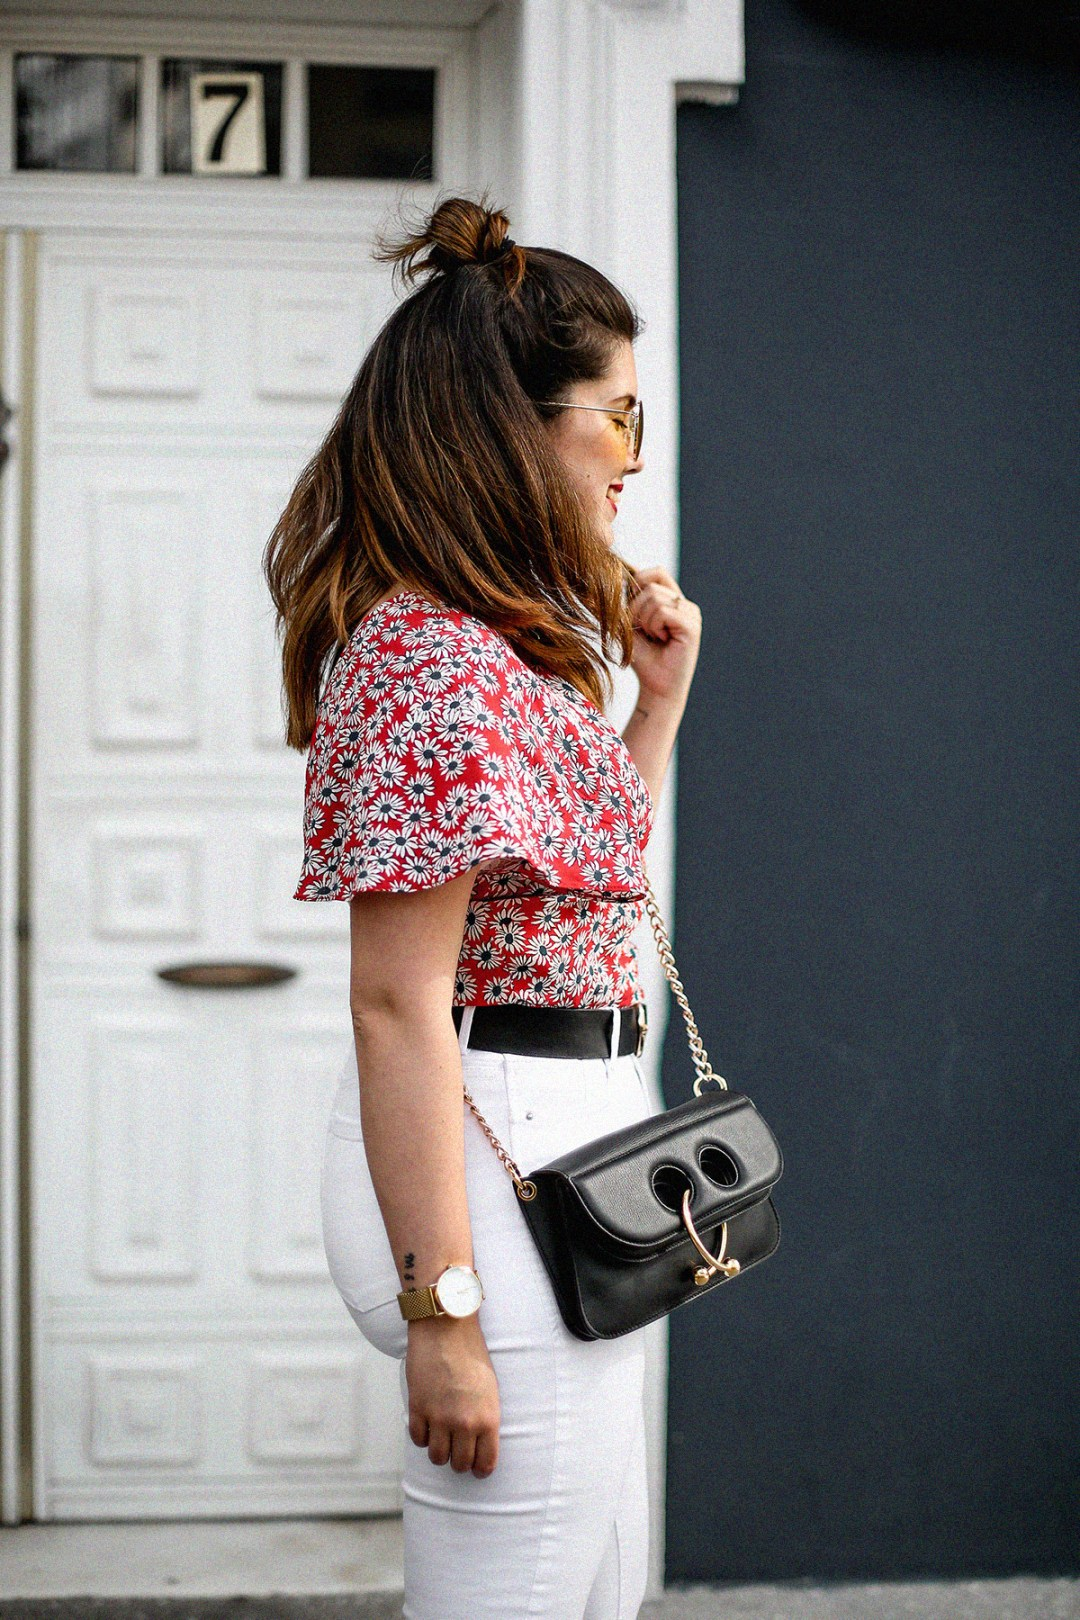 flower-top-zara-frayed-white-jeans-chanel-slingback-jw-anderson-bag-streetstyle3